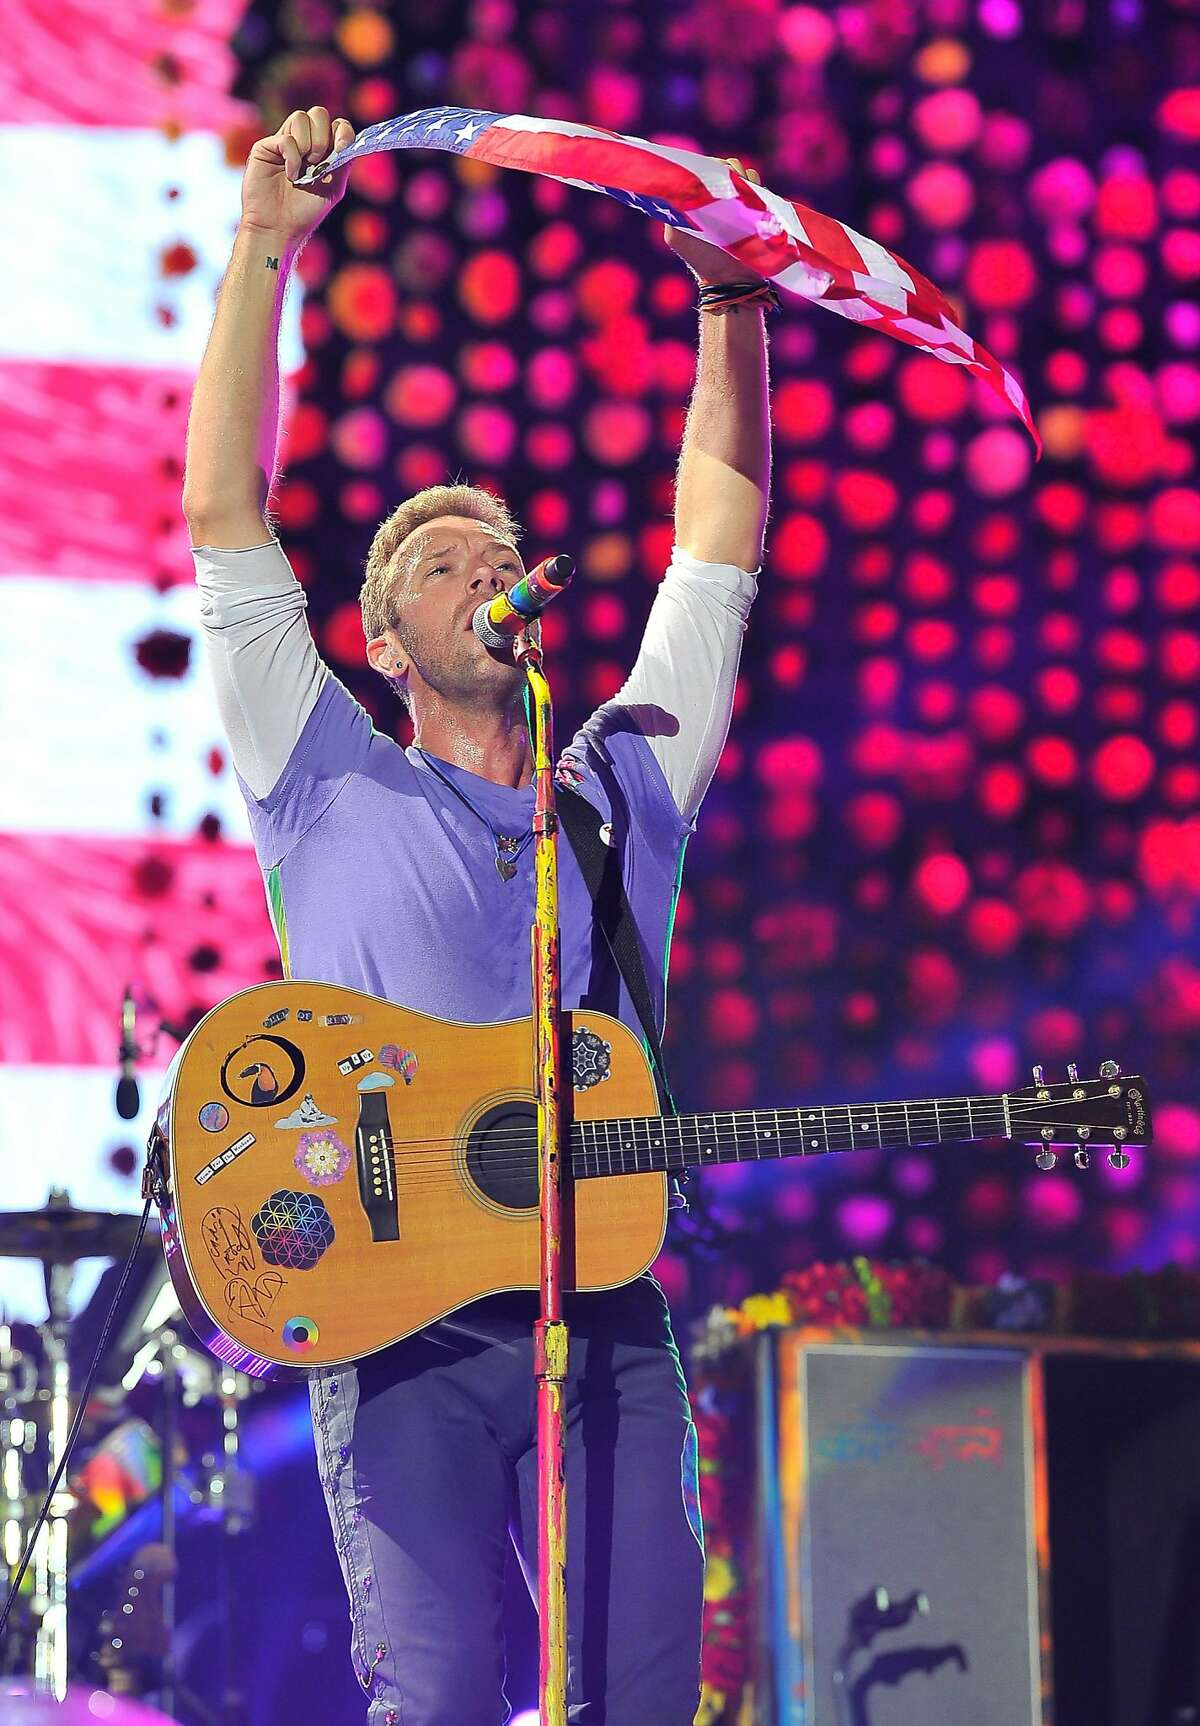 British rock group Coldplay performed at Levi's Stadium on Oct. 4 in Santa Clara, California.